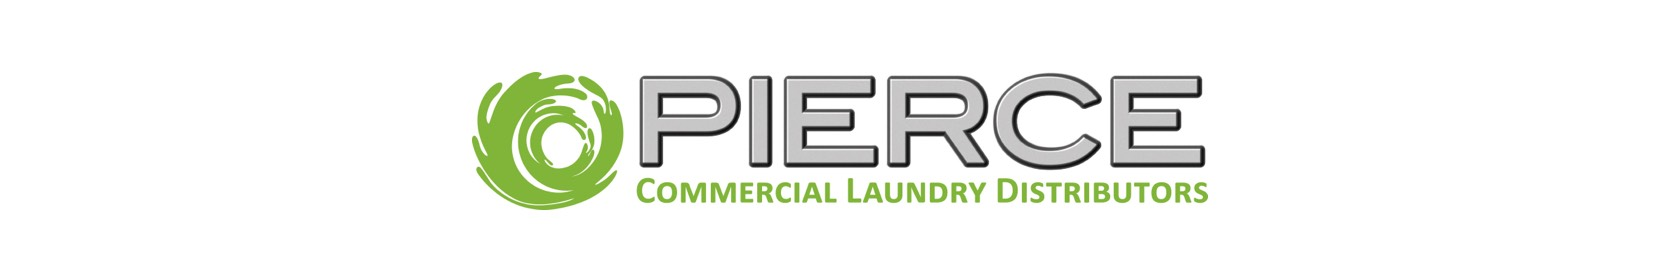 Pierce Commercial Laundry Logo